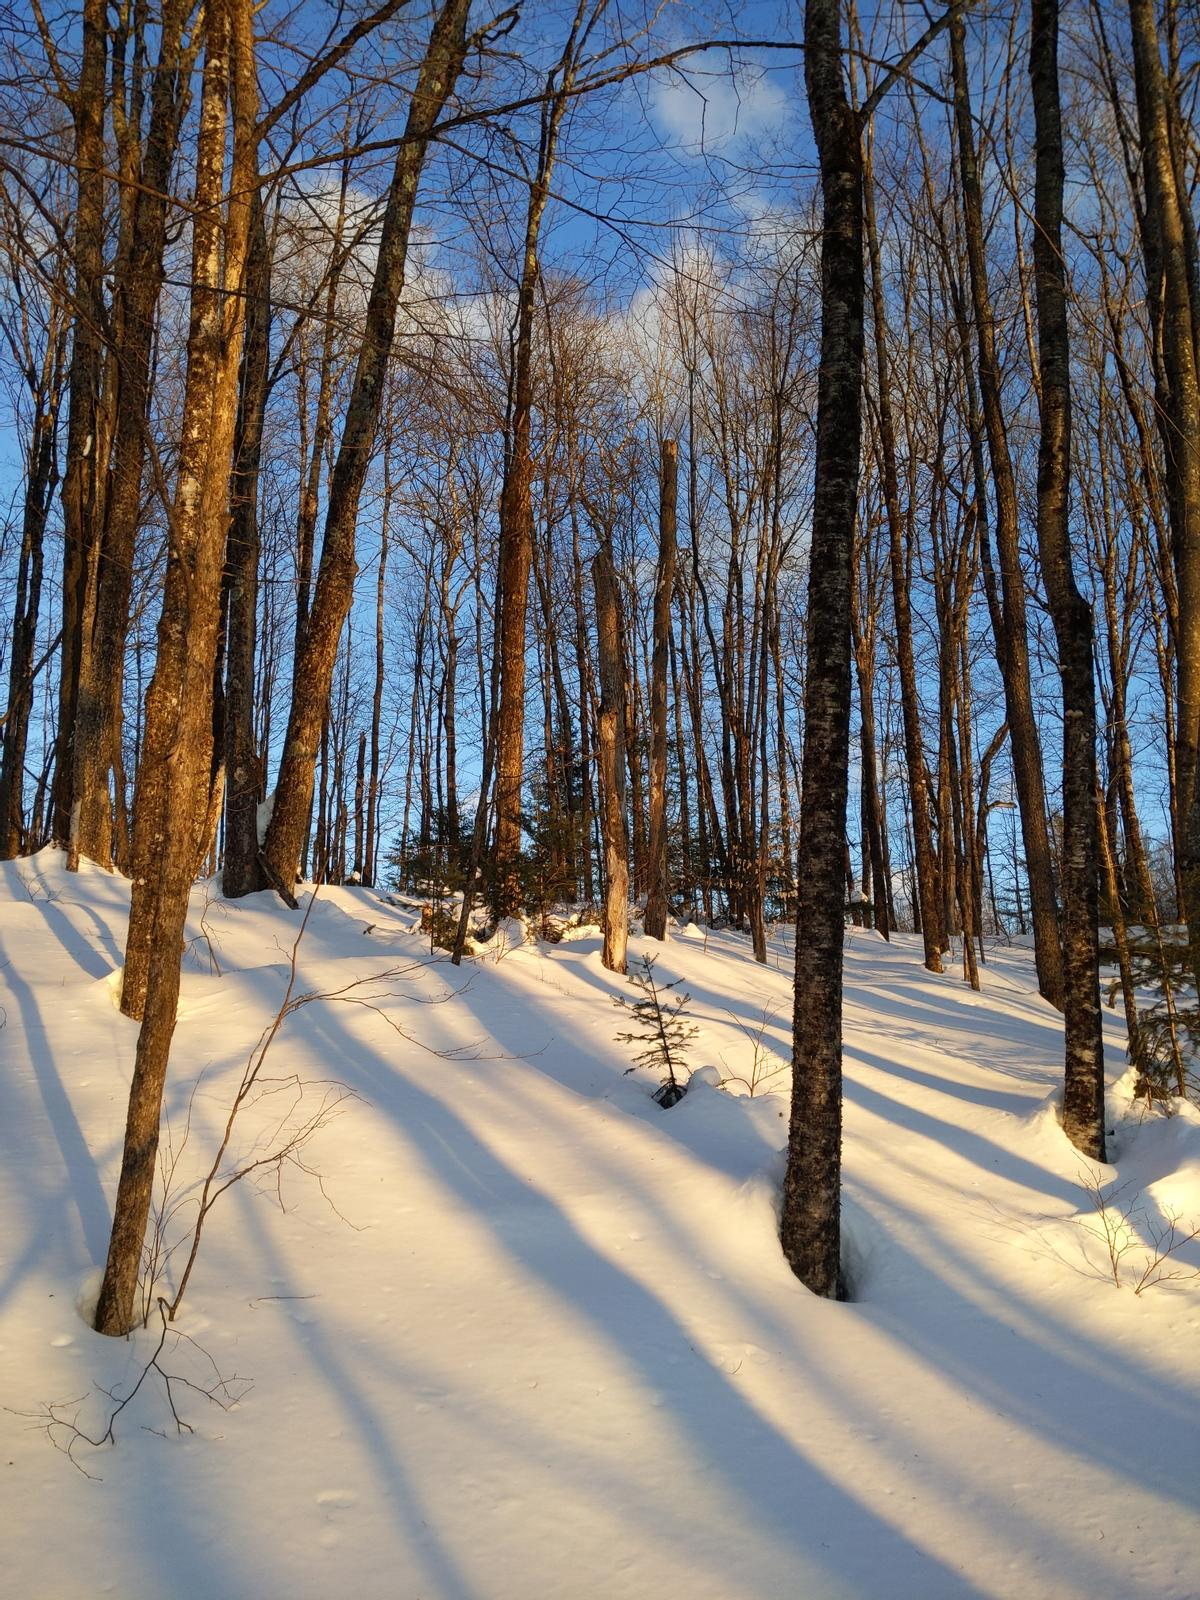 Sunlight on the snowy ground is one of the joys of the winter woods.